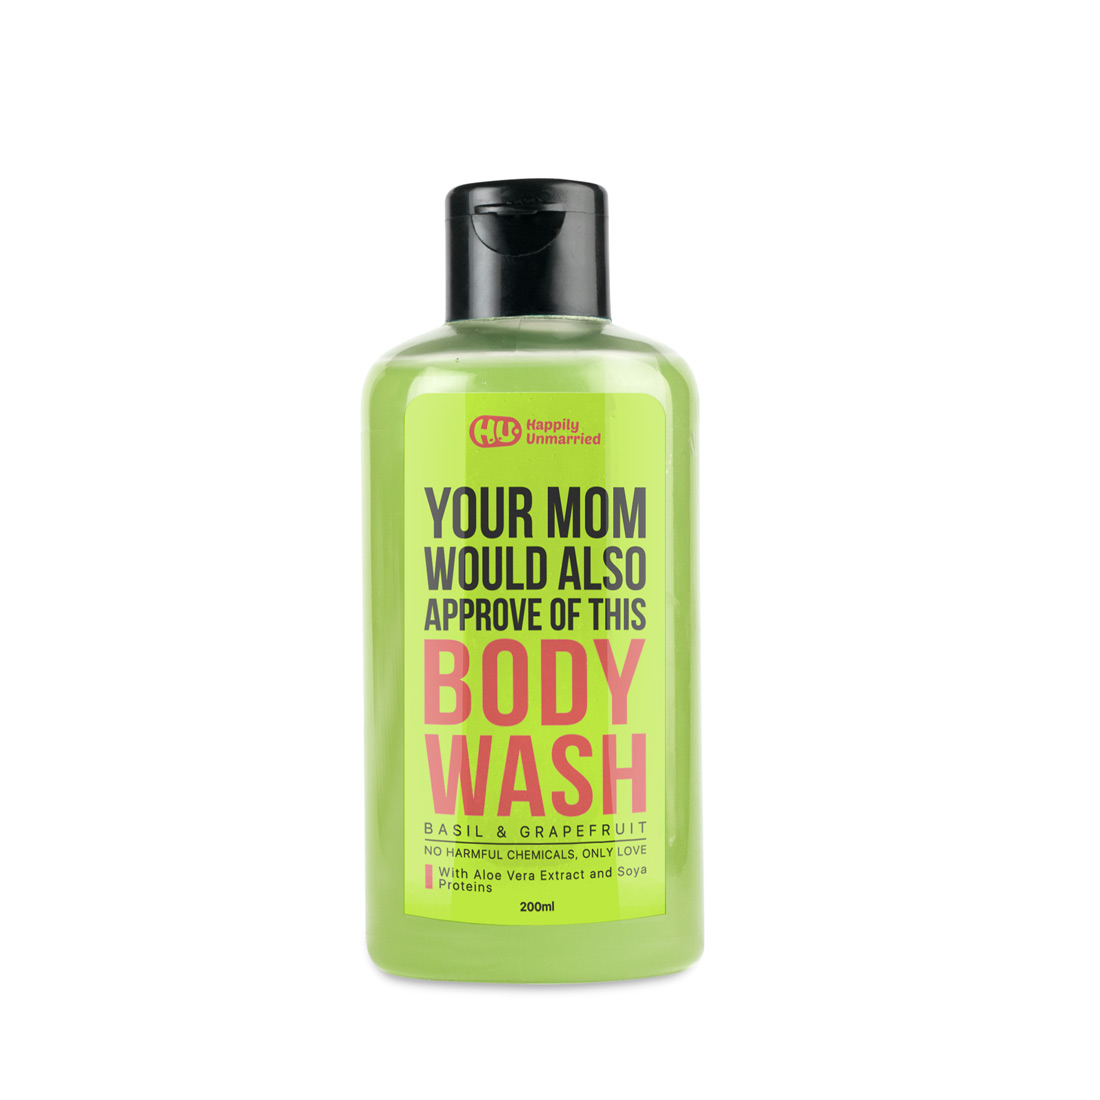 Body Wash - Basil & Grapefruit - 200ml